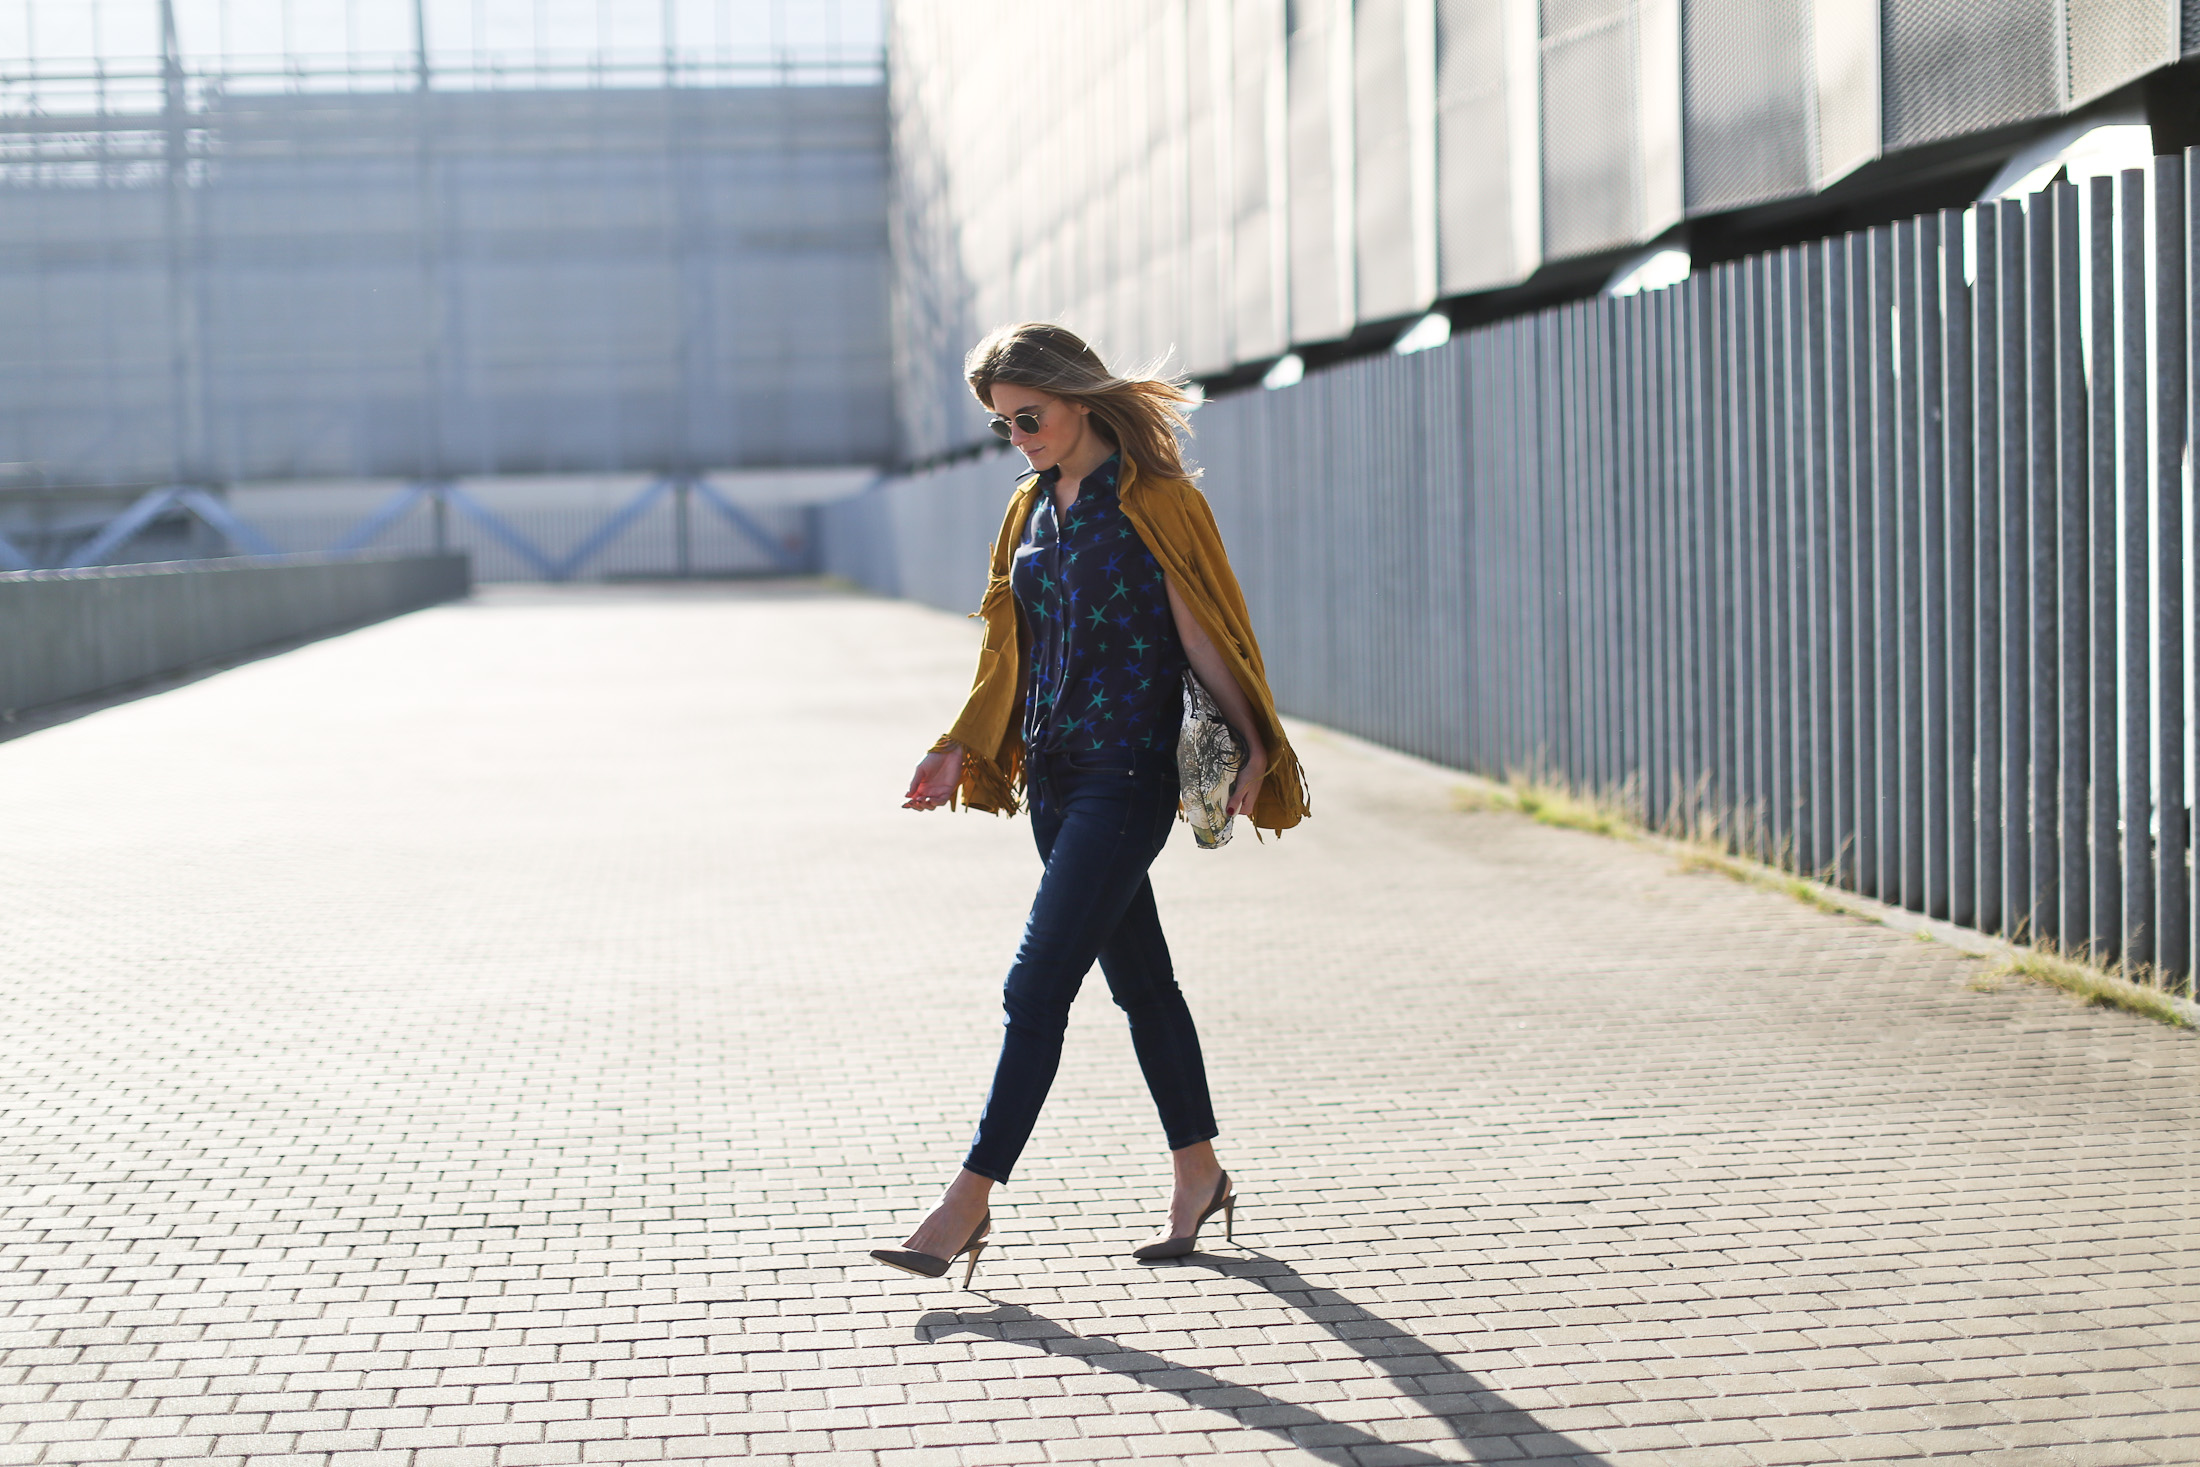 Clochet_streetstyle_zubi_helsinki_clutch_trimmerbilbao_equipment_france_silk_blouse-16